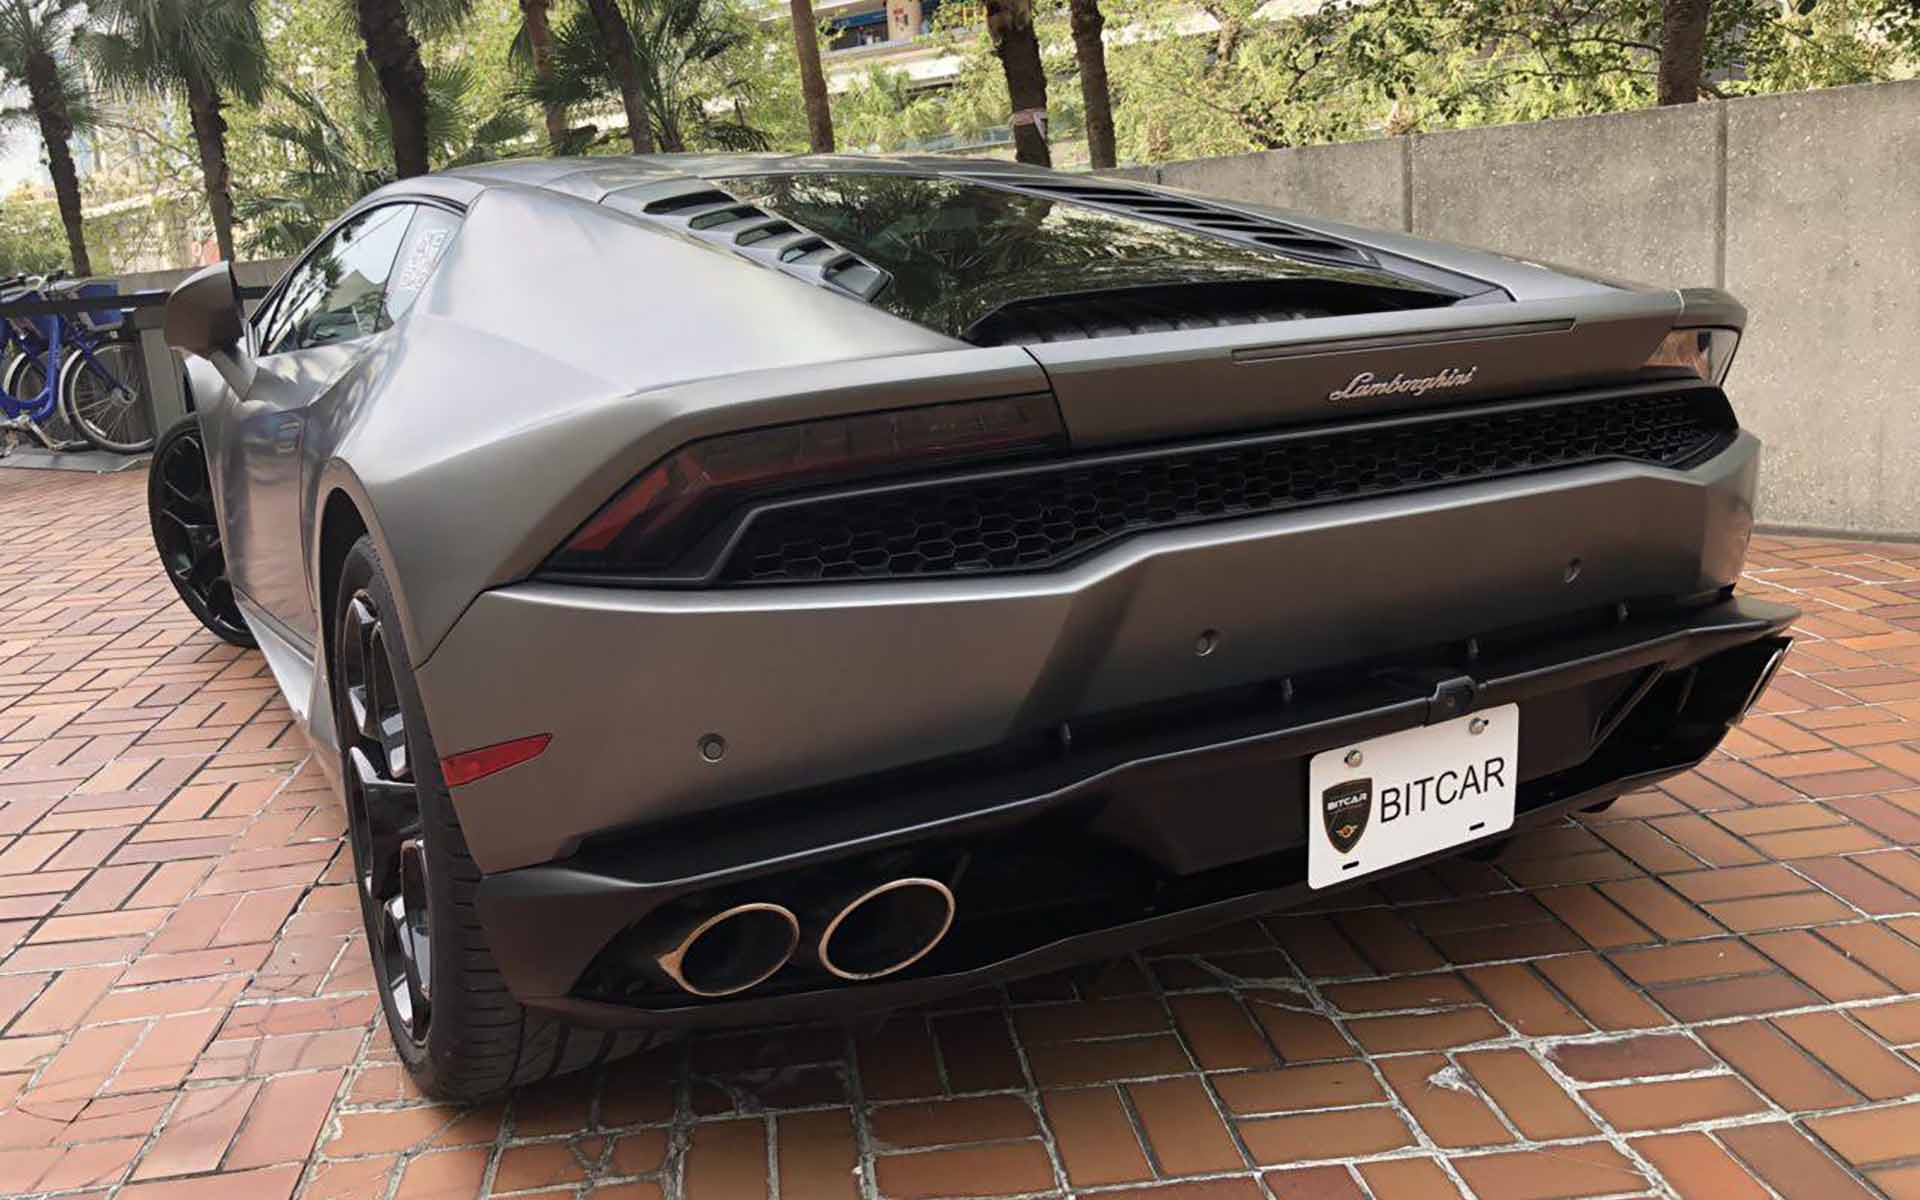 Bitcar Model Allows Users the Ability to Trade Their Way to Full Car Ownership